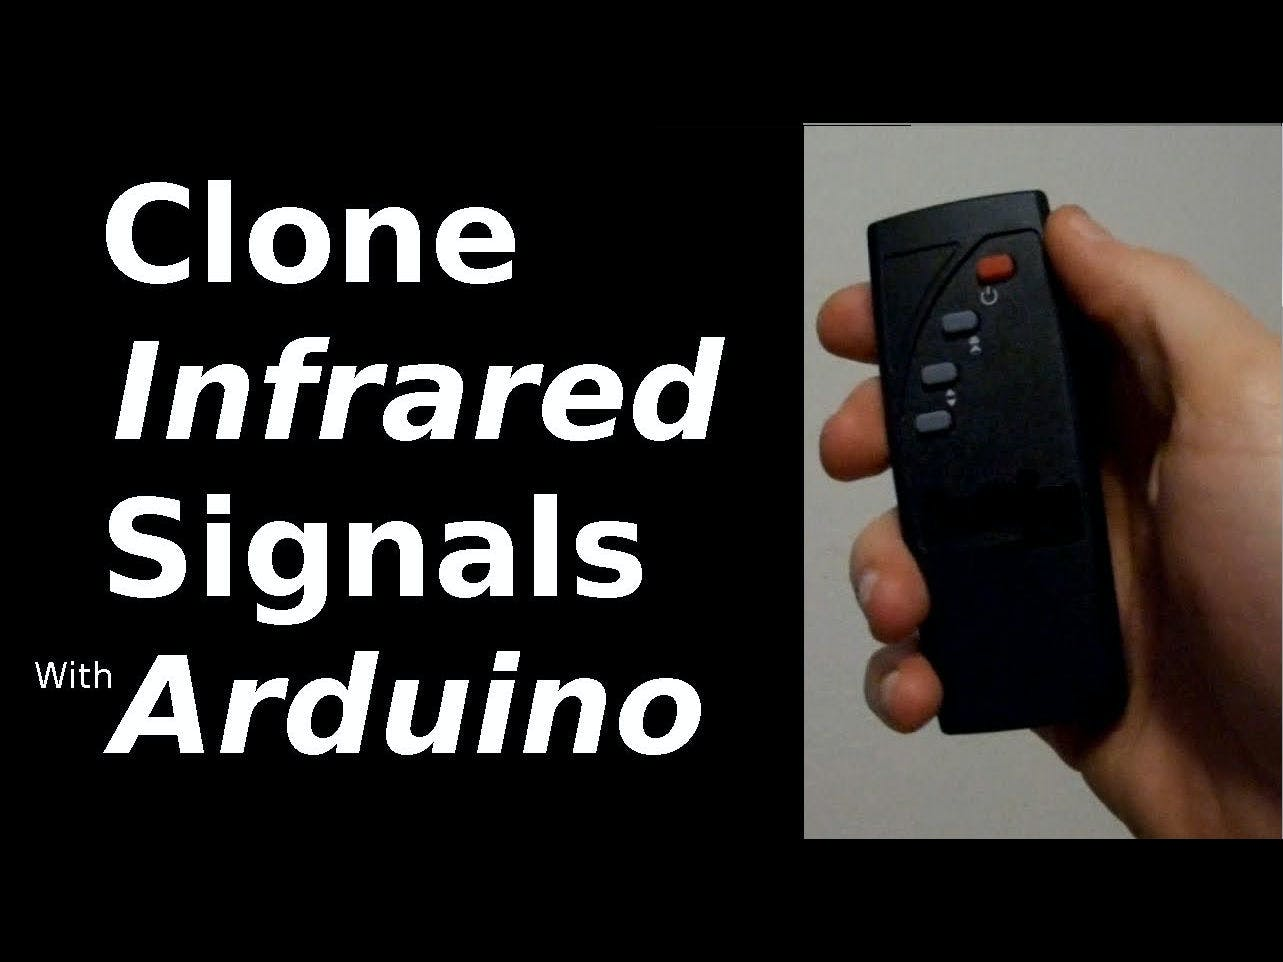 Clone Infrared Signals with Arduino